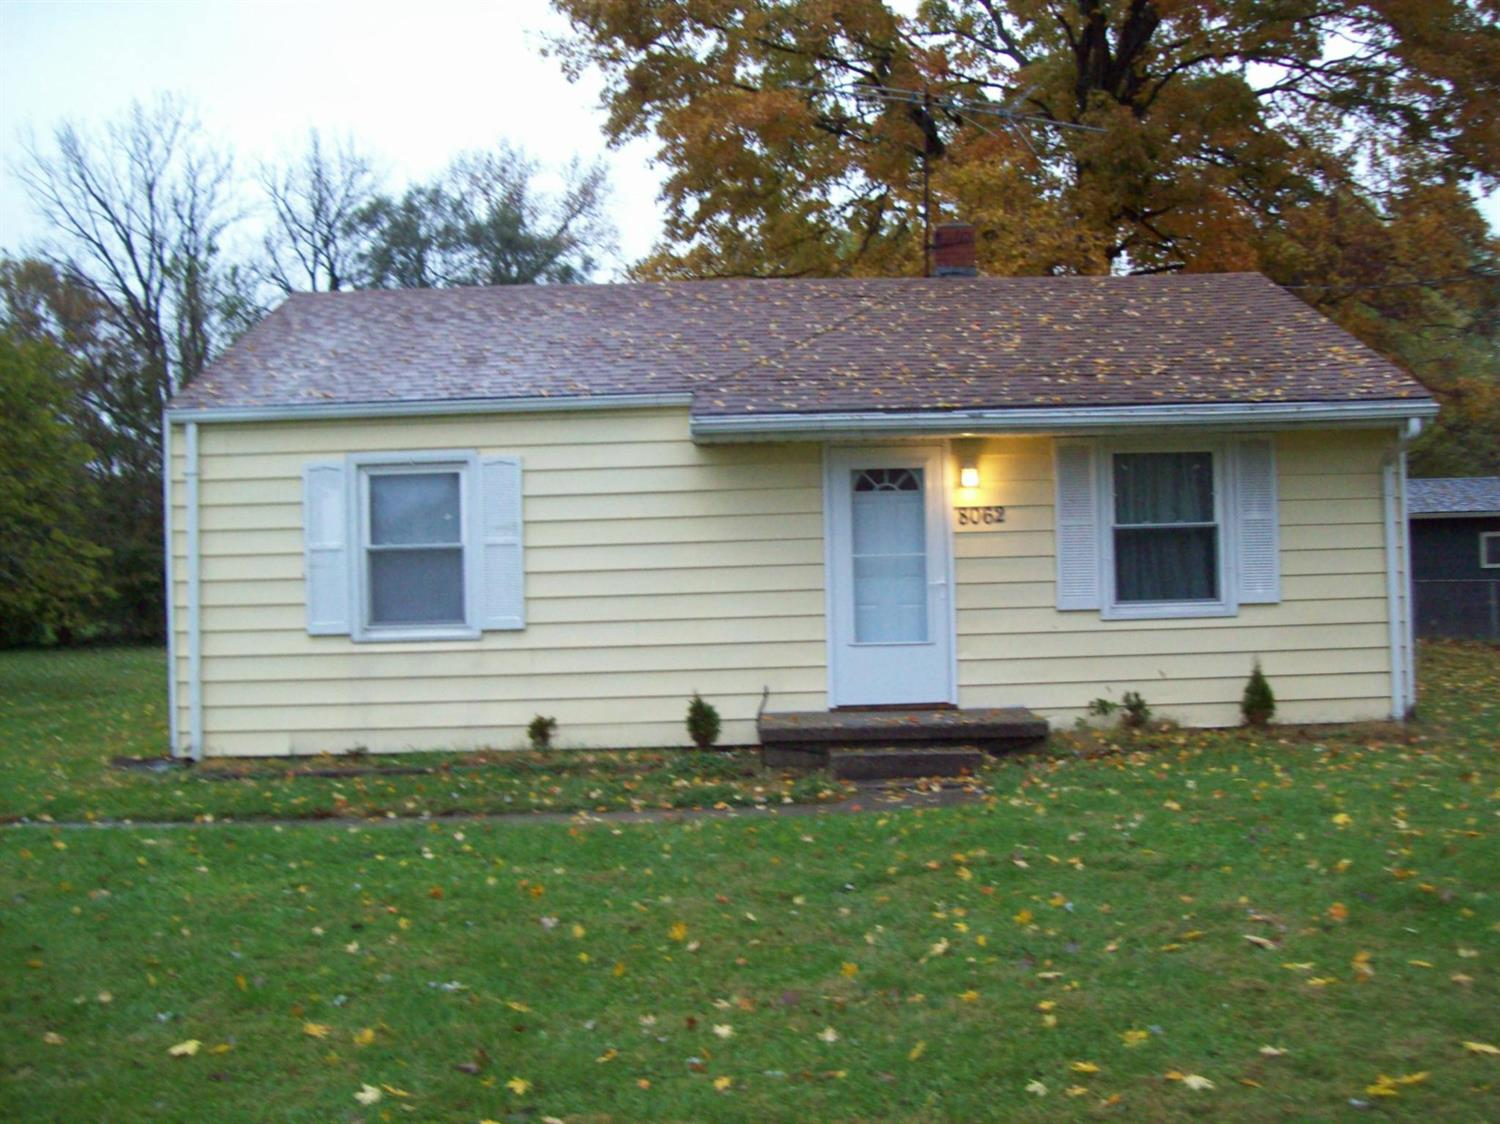 Property for sale at 8062 Franklin Trenton Road, Franklin Twp,  OH 45005